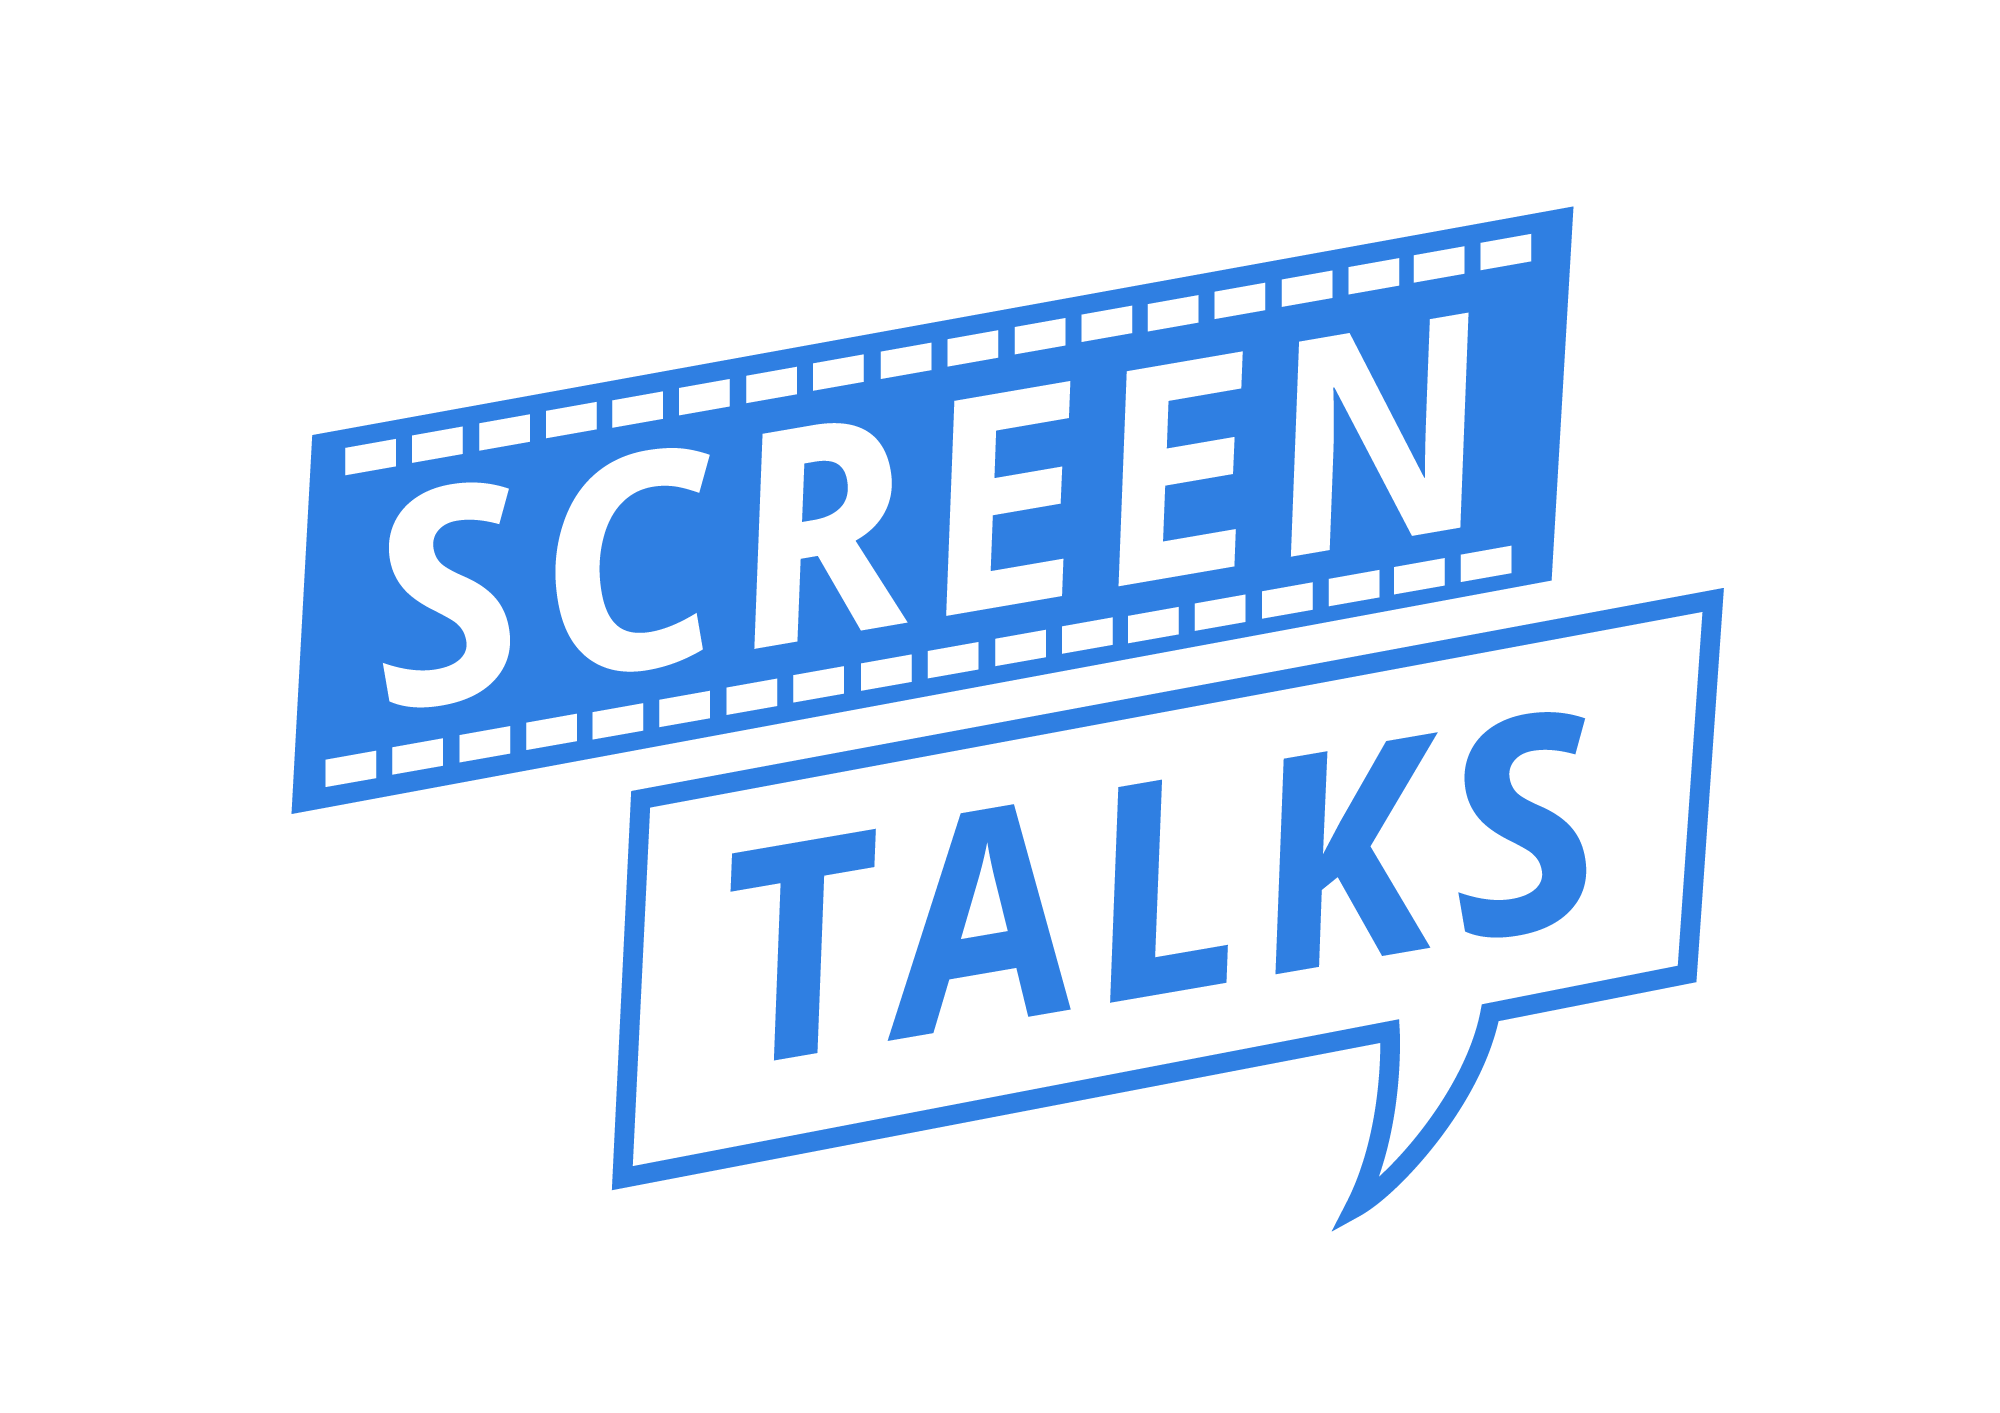 Screen Talks Webinar with Grainne Humphreys